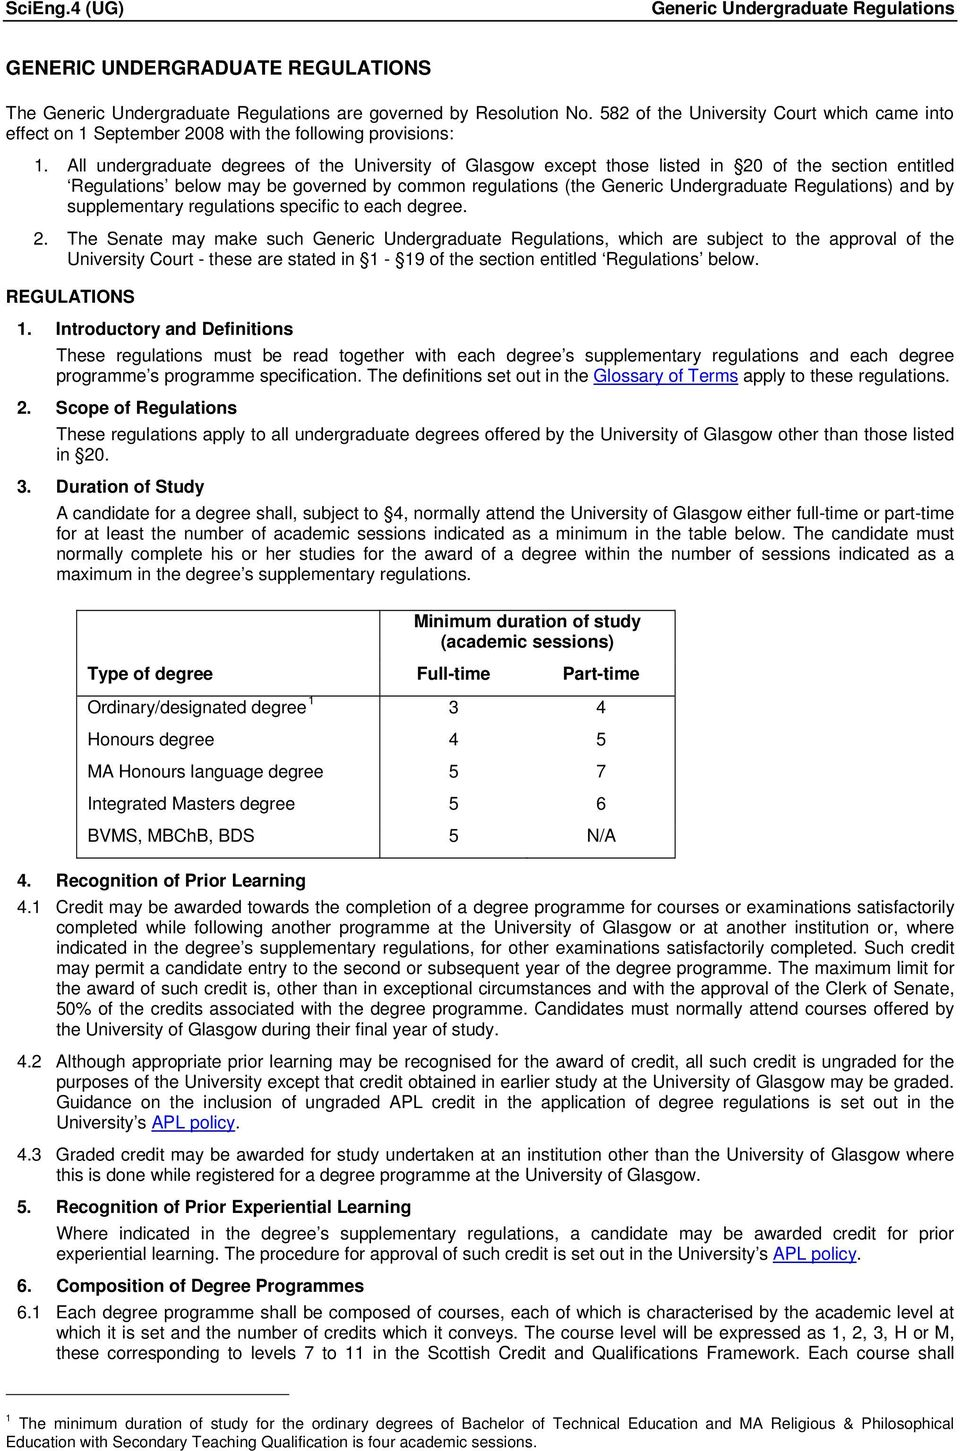 All undergraduate degrees of the University of Glasgow except those listed in 20 of the section entitled Regulations below may be governed by common regulations (the Generic Undergraduate